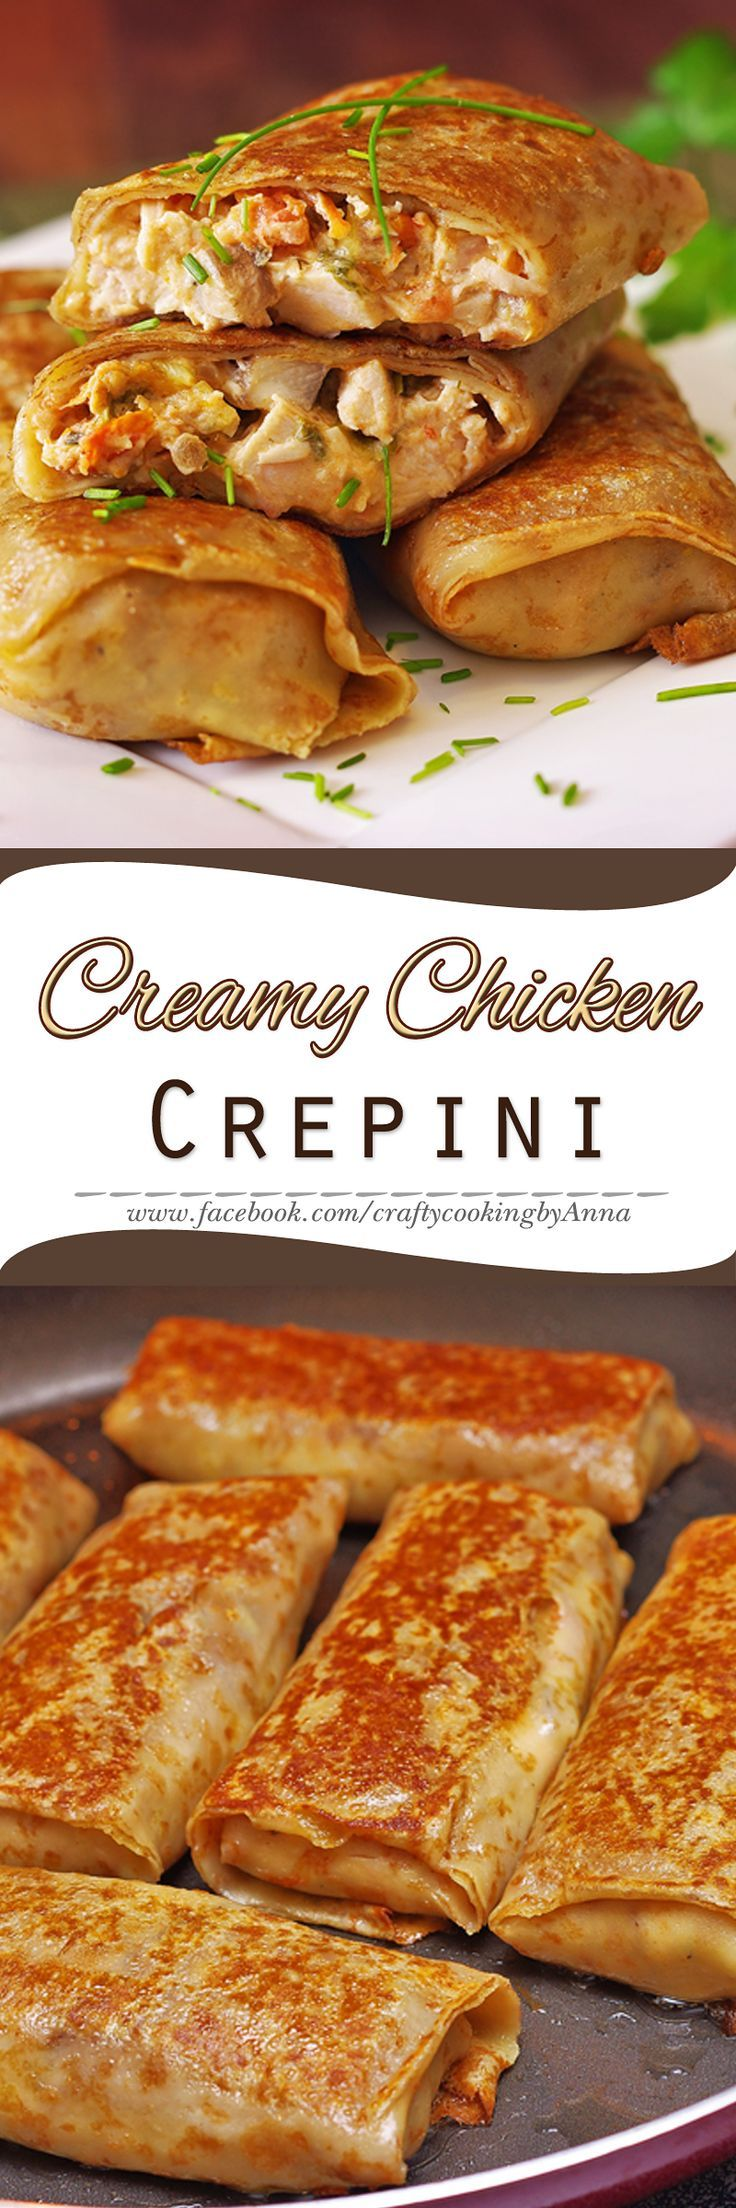 Creamy Chicken Crepini! #Delicious #Breakfast #Lunch #Snack #Portable #Crepes #Nalesniki #Nalistniki